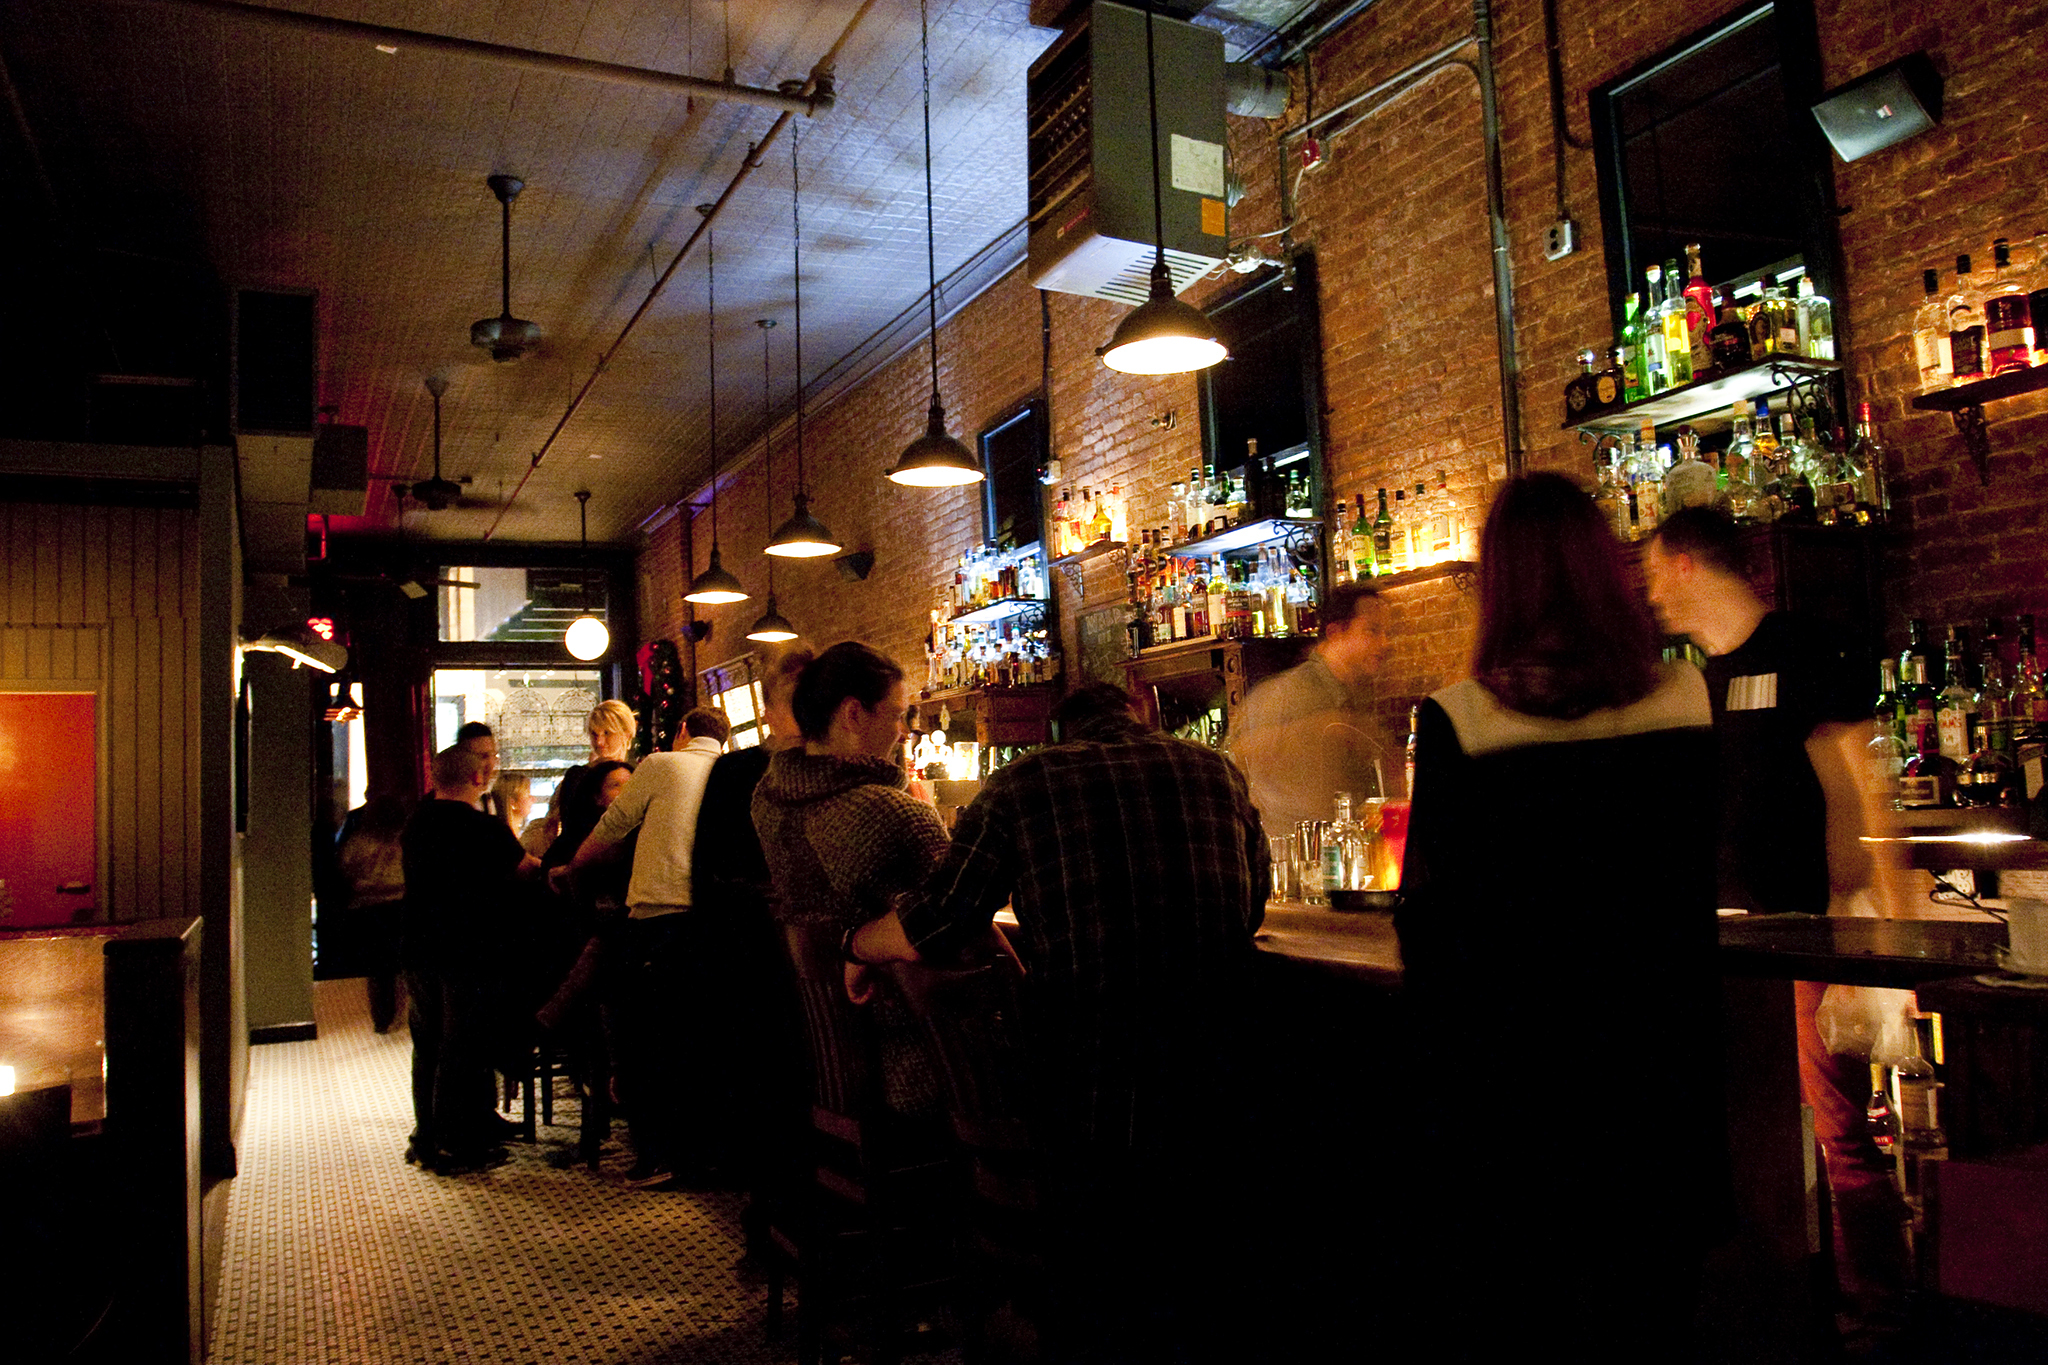 24 hour nyc late night bars restaurants gyms and more for Places to see in nyc at night